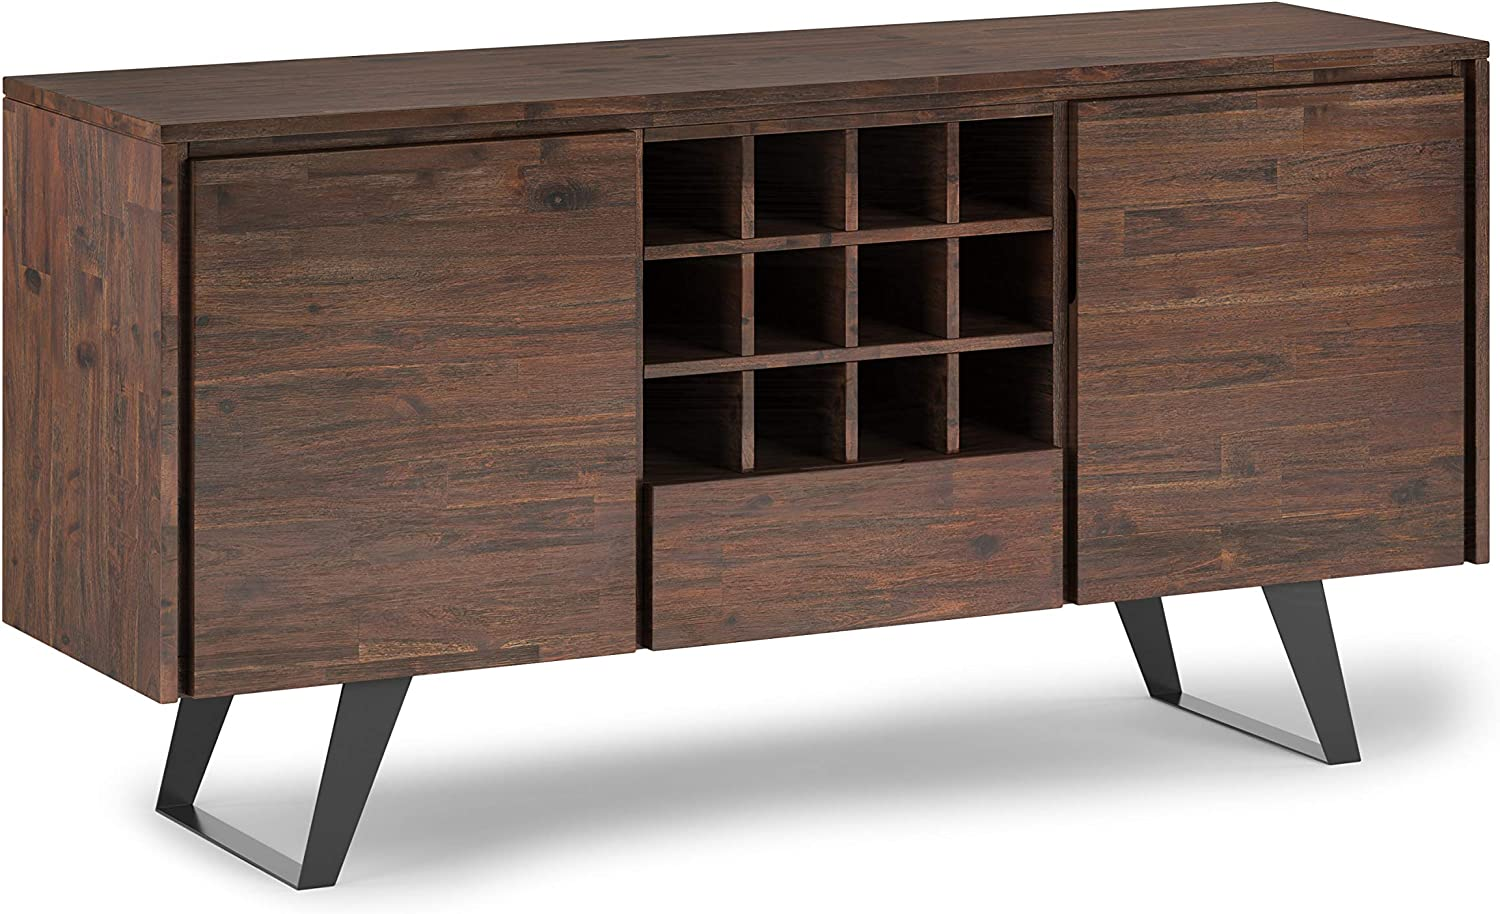 SIMPLIHOME Lowry SOLID ACACIA WOOD Industria Modern inch Wide 定番の人気シリーズPOINT ポイント 入荷 60 正規激安